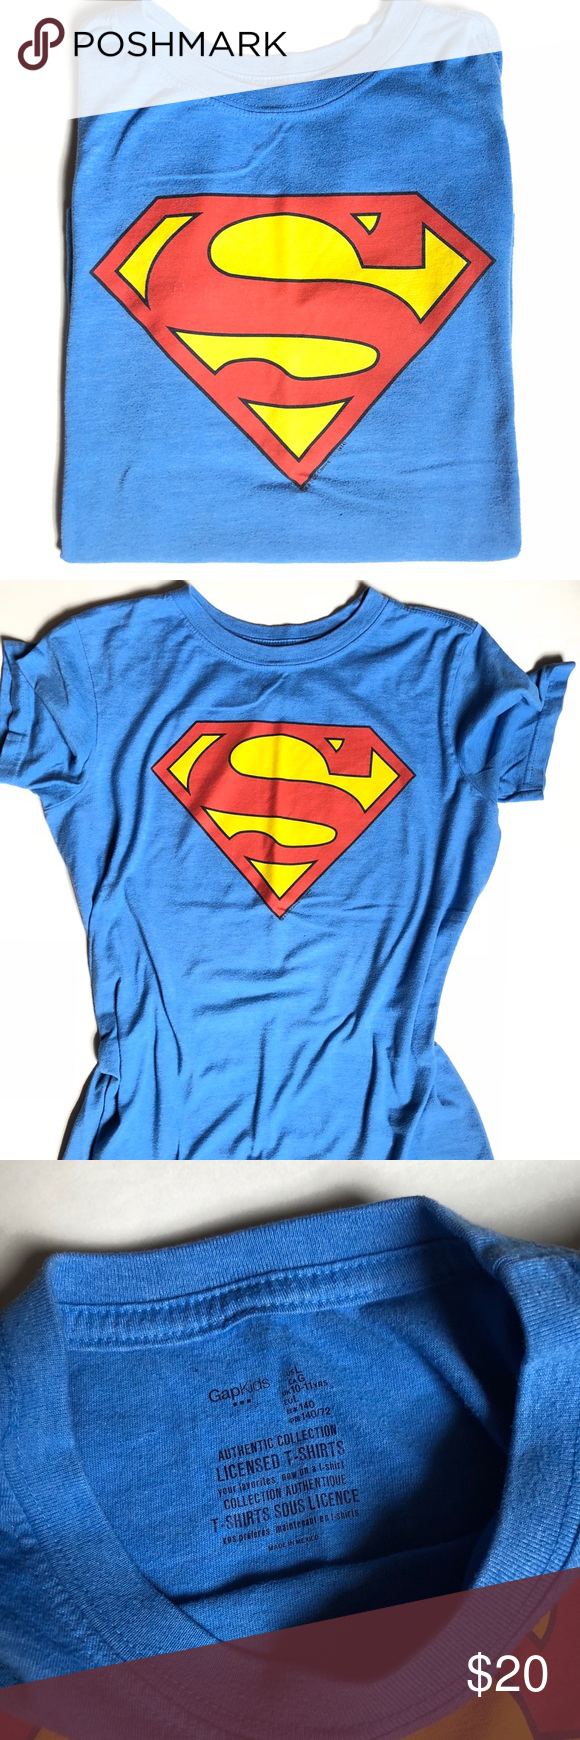 eb95aca7 Vintage Superman T-shirt Blue vintage Superman Gap T-shirt. Has that soft  vintage feel. Fits a ladies s/xs or a men's xxs. Back to school wardrobe!